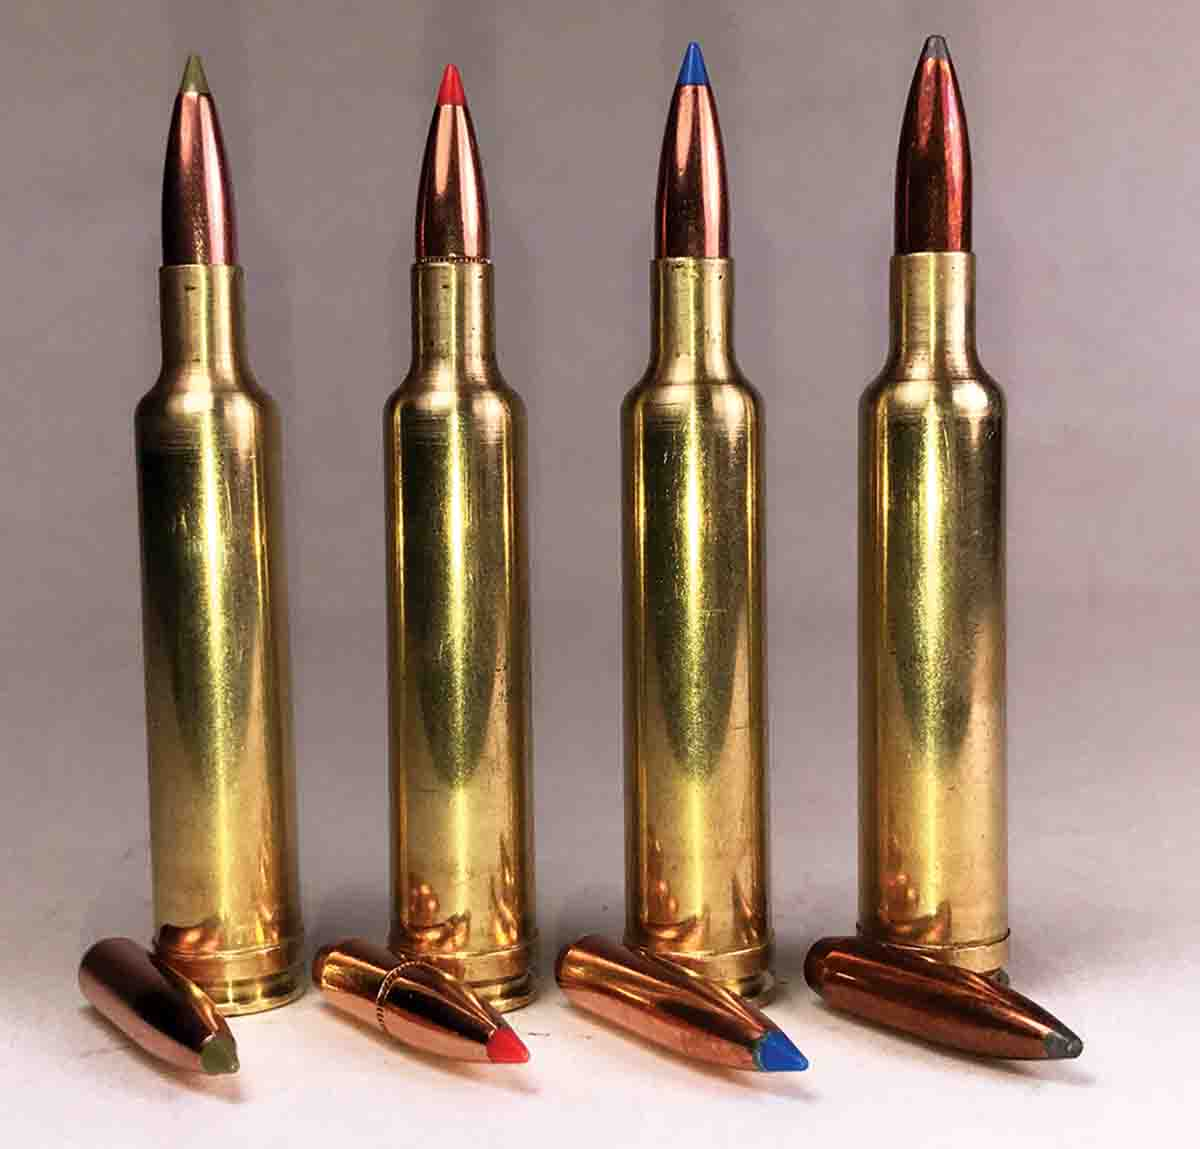 Bullets handloaded for the .257 Weatherby Magnum include (left to right): the Nosler 100-grain E-Tip, Hornady 110  InterBond, Nosler 115 Ballistic Tip and the Sierra 117-grain GameKing SBT.